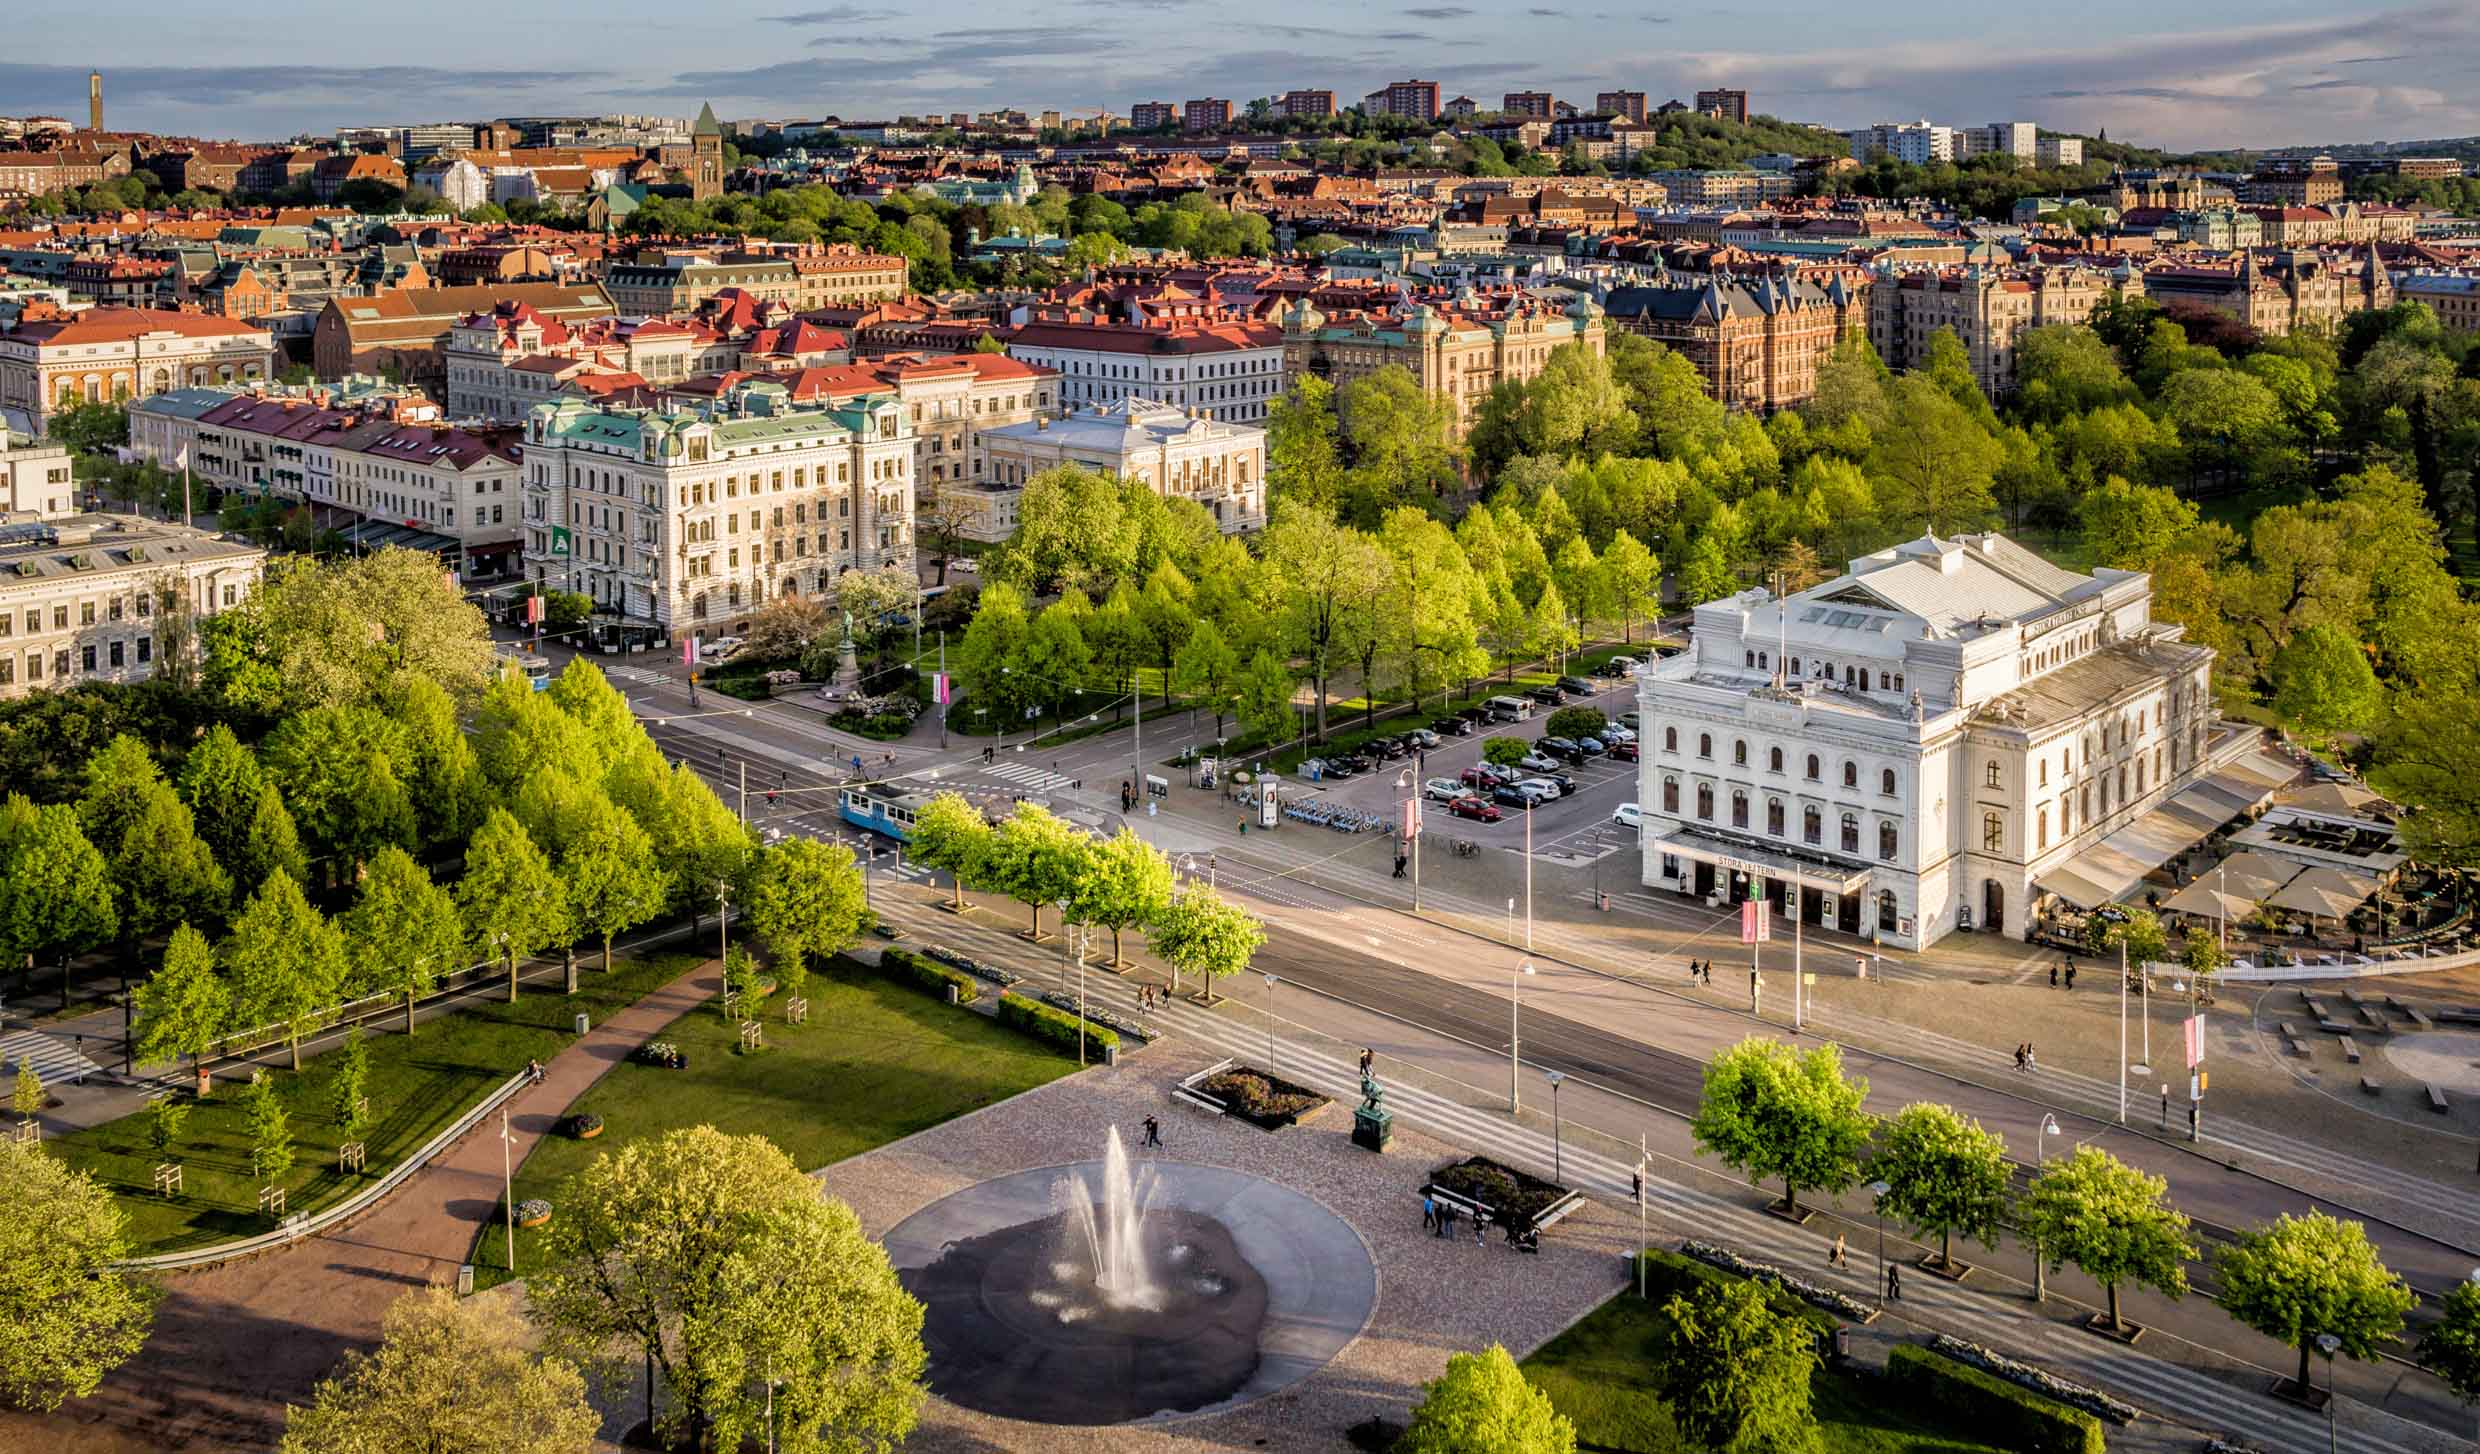 In the foreground this image features Stora Teatern ('The Big Theatre') situated in Kungsparken, Gothenburg.